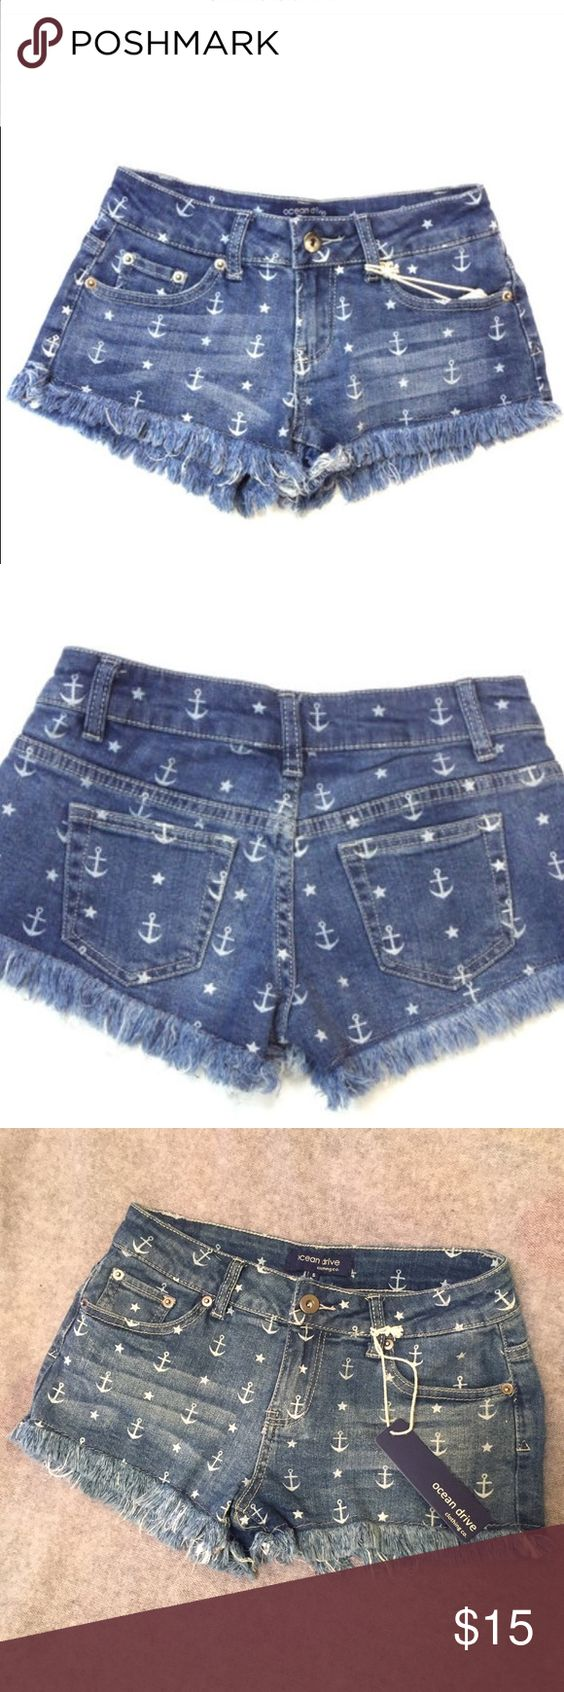 (NWT) Ocean Drive Denim Shorts, Coachella 2017! ⭐️ New with Tags!  Get ready for spring break with these Ocean Drive denim nautical anchor star print shorts Ocean Drive Shorts Jean Shorts